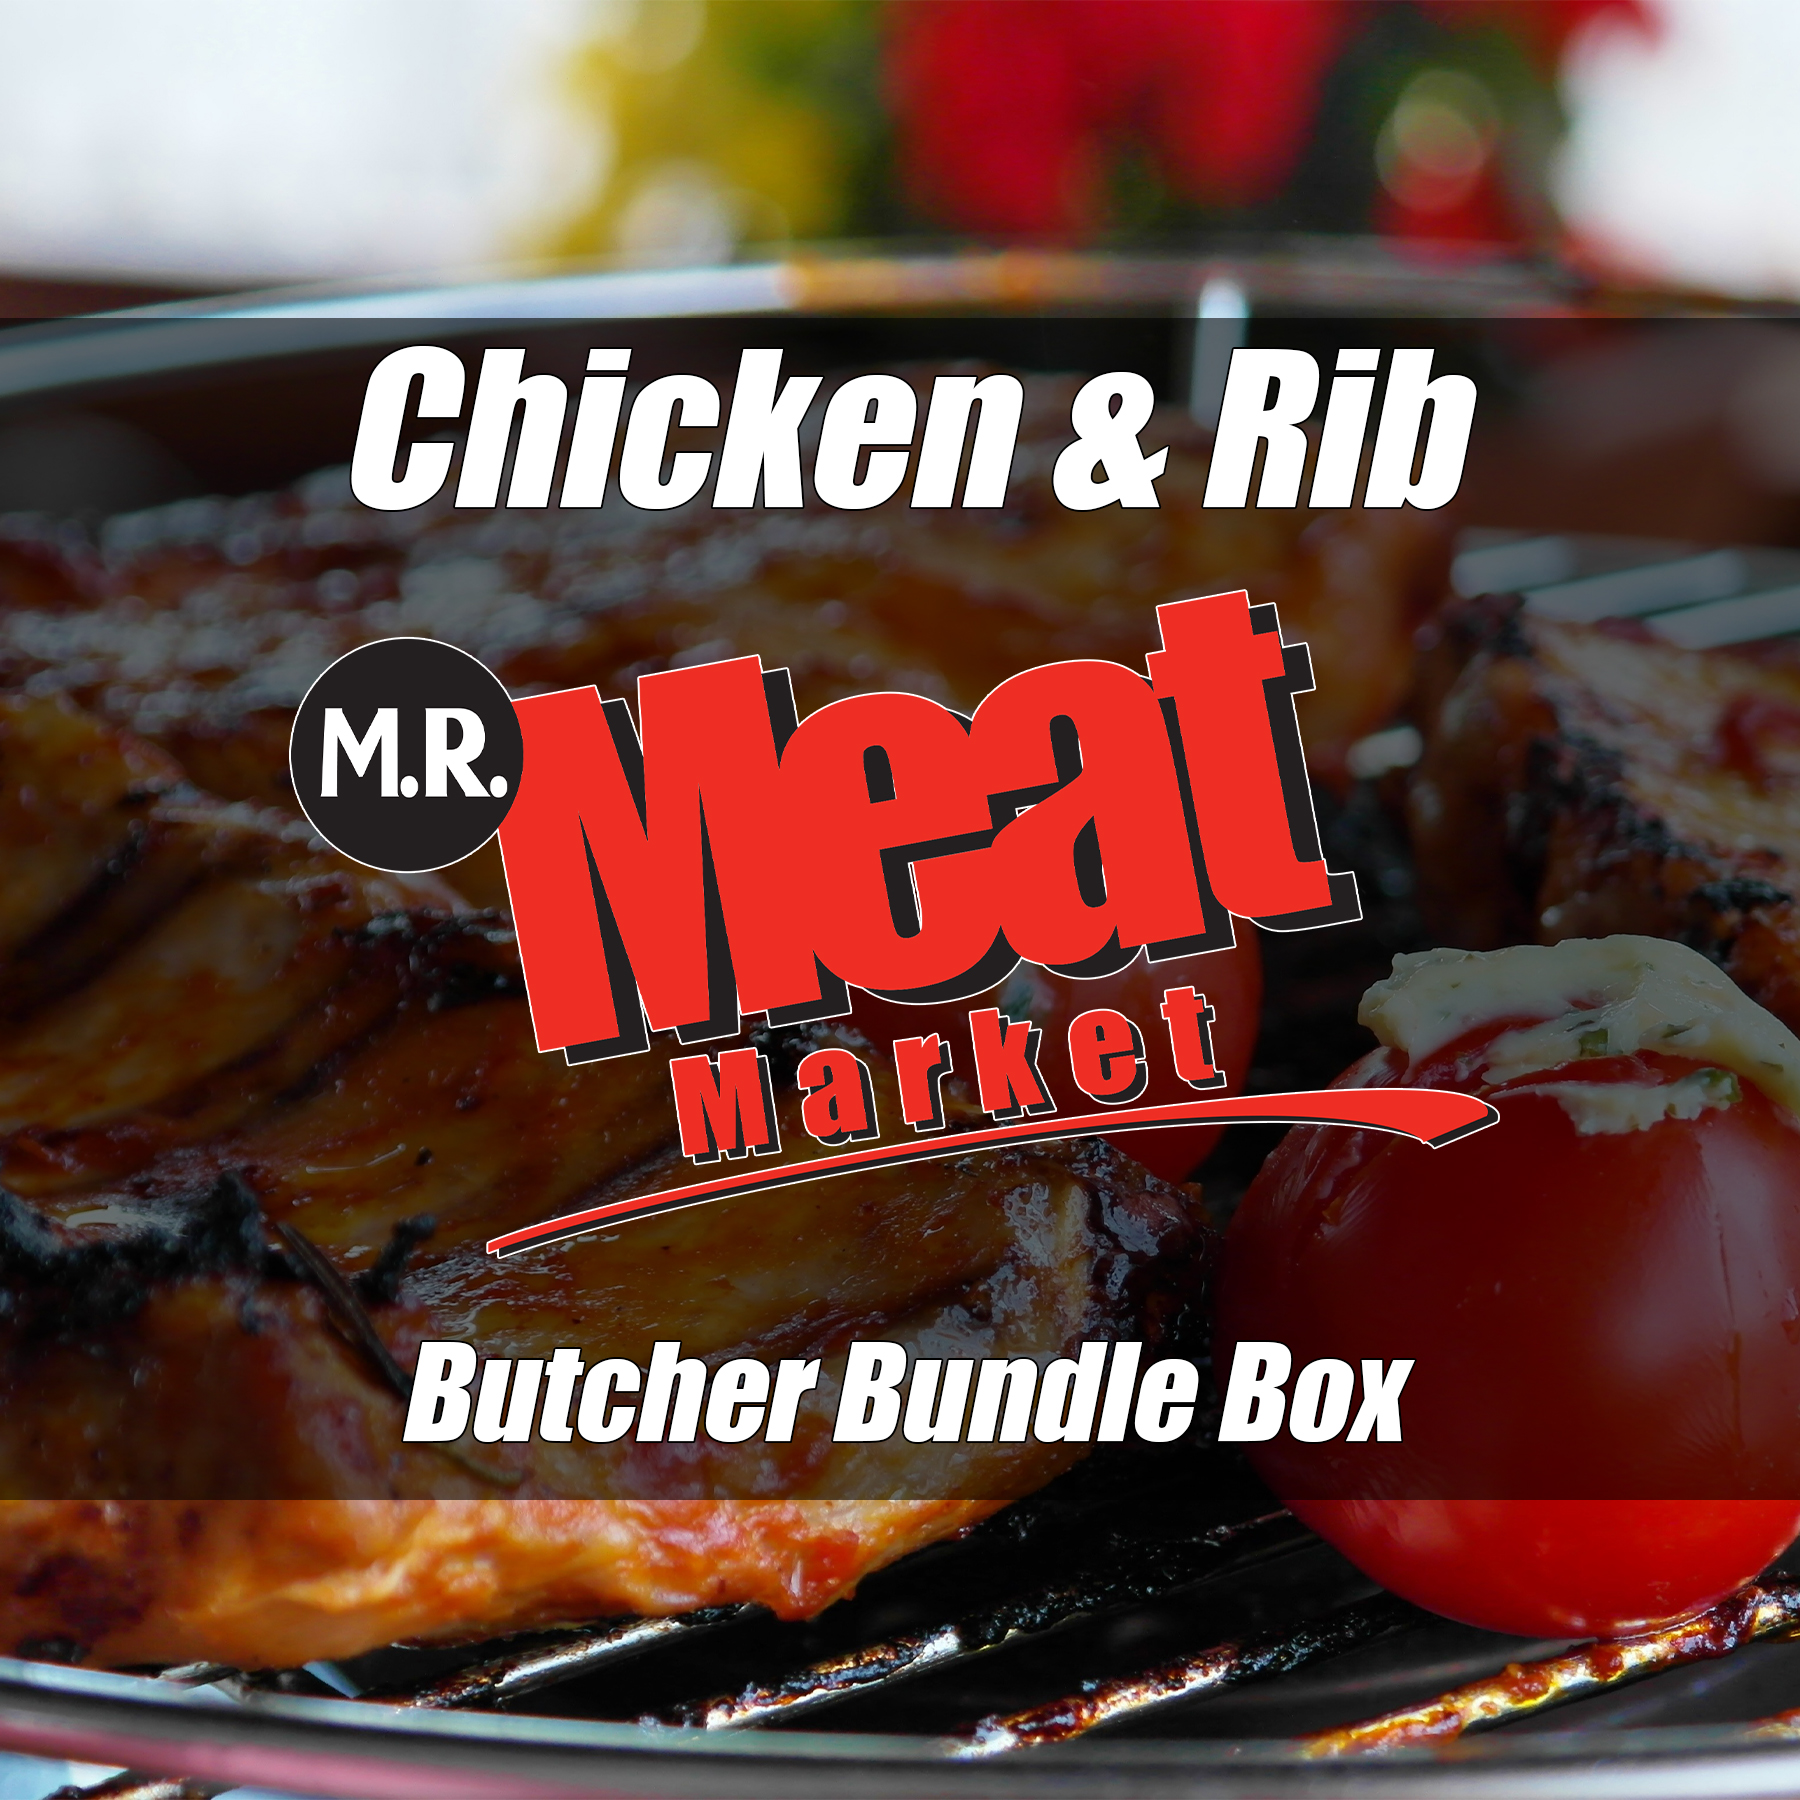 Chicken and Rib